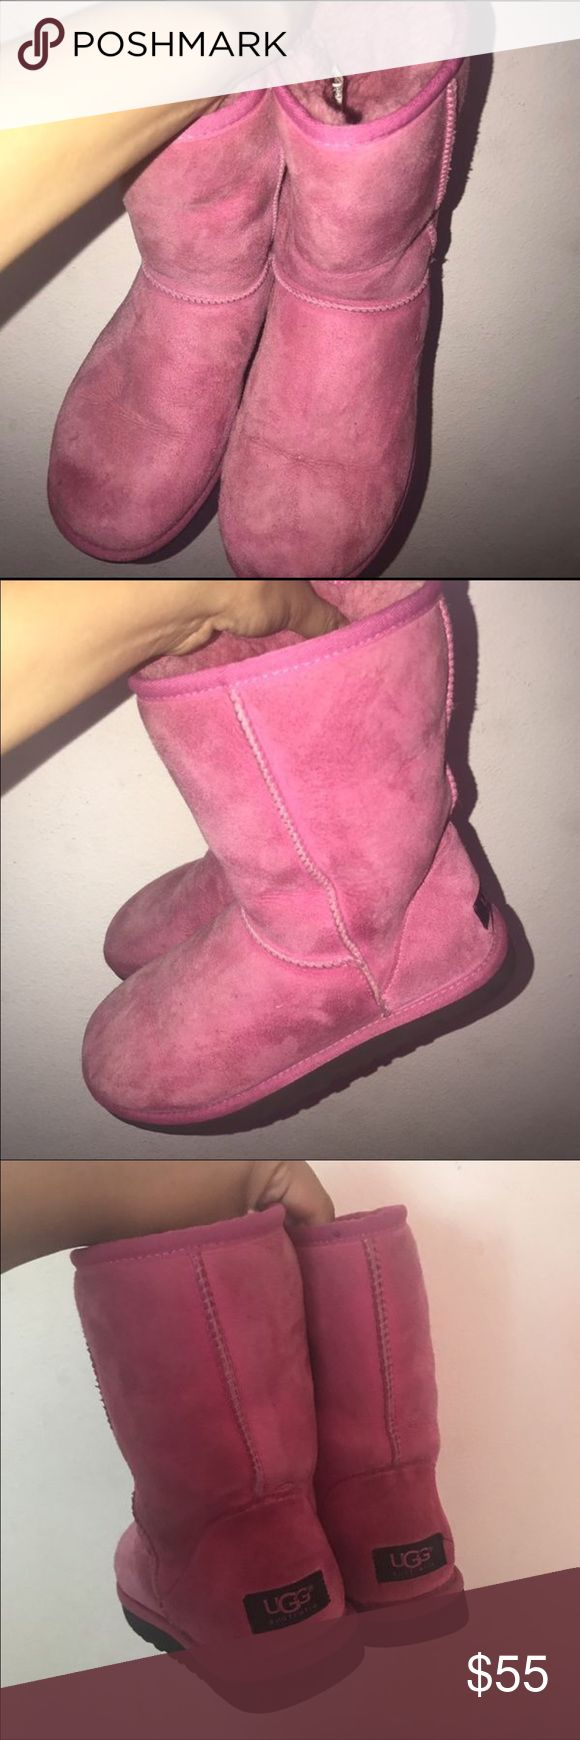 Pink uggs Wore once to the fair but didn't wash UGG Shoes Winter & Rain Boots